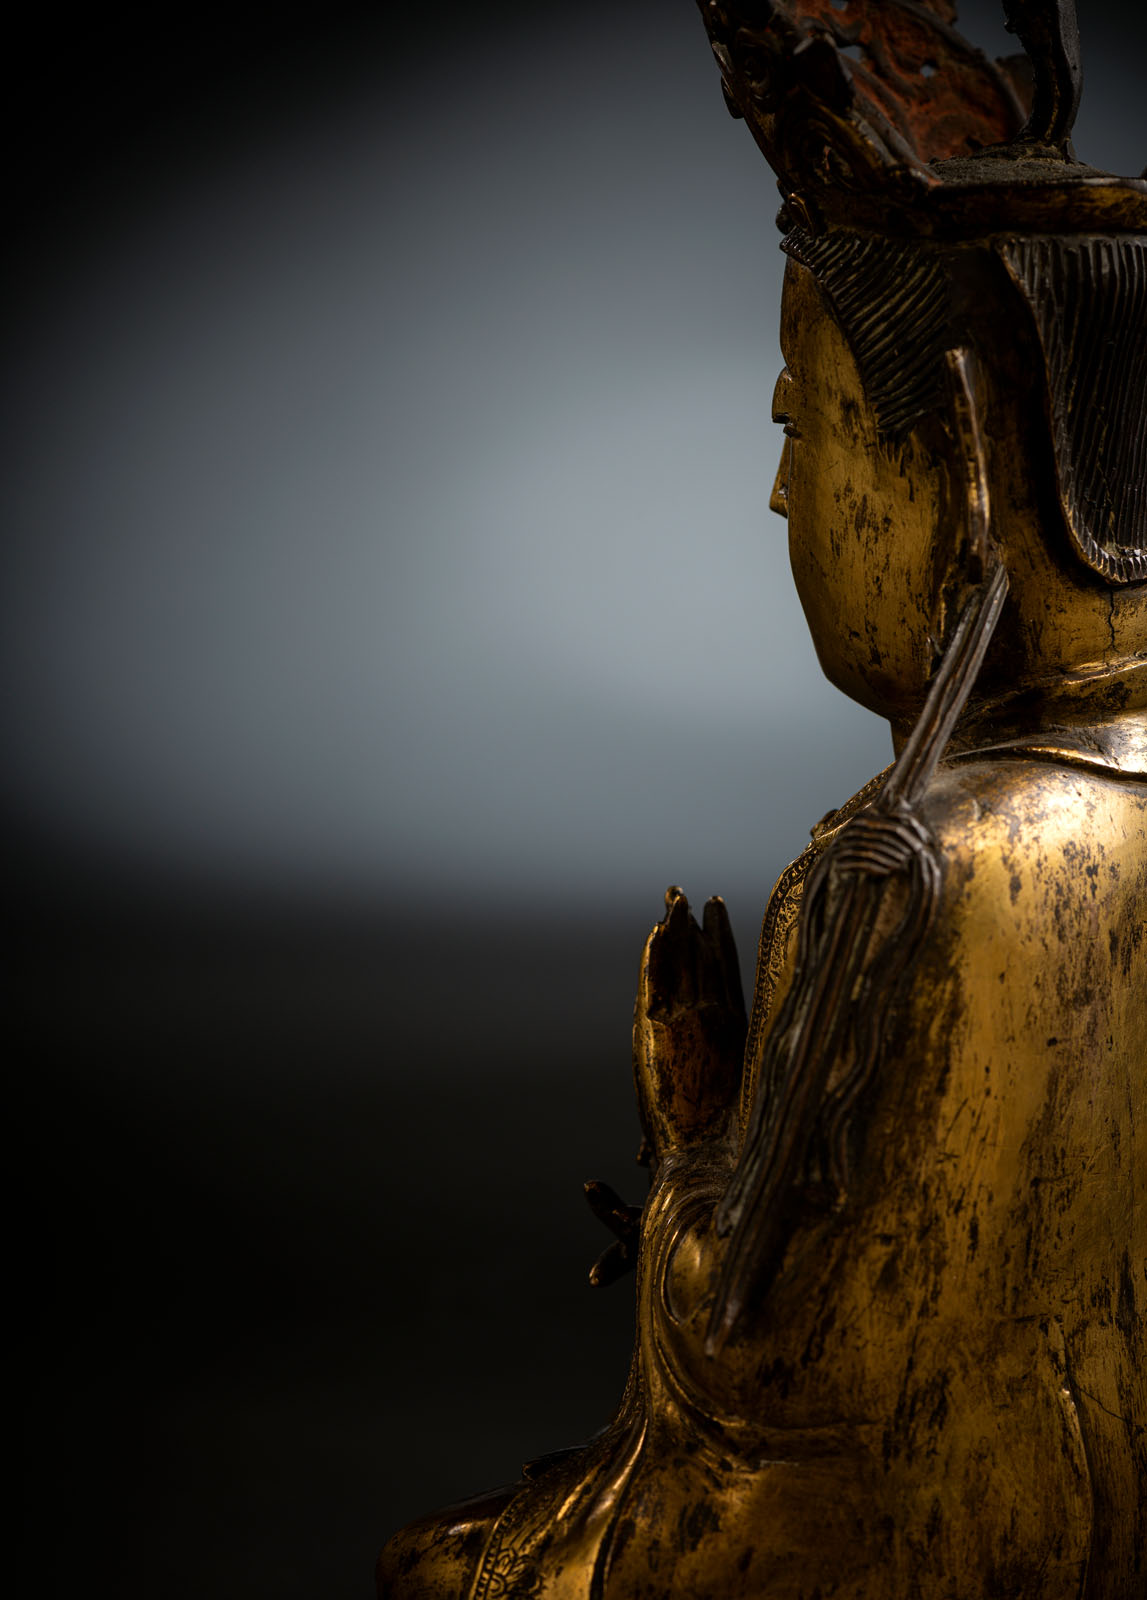 A RARE GILT-BRONZE FIGURE OF SURYABRAHA WITH SUN DISK - Image 5 of 10